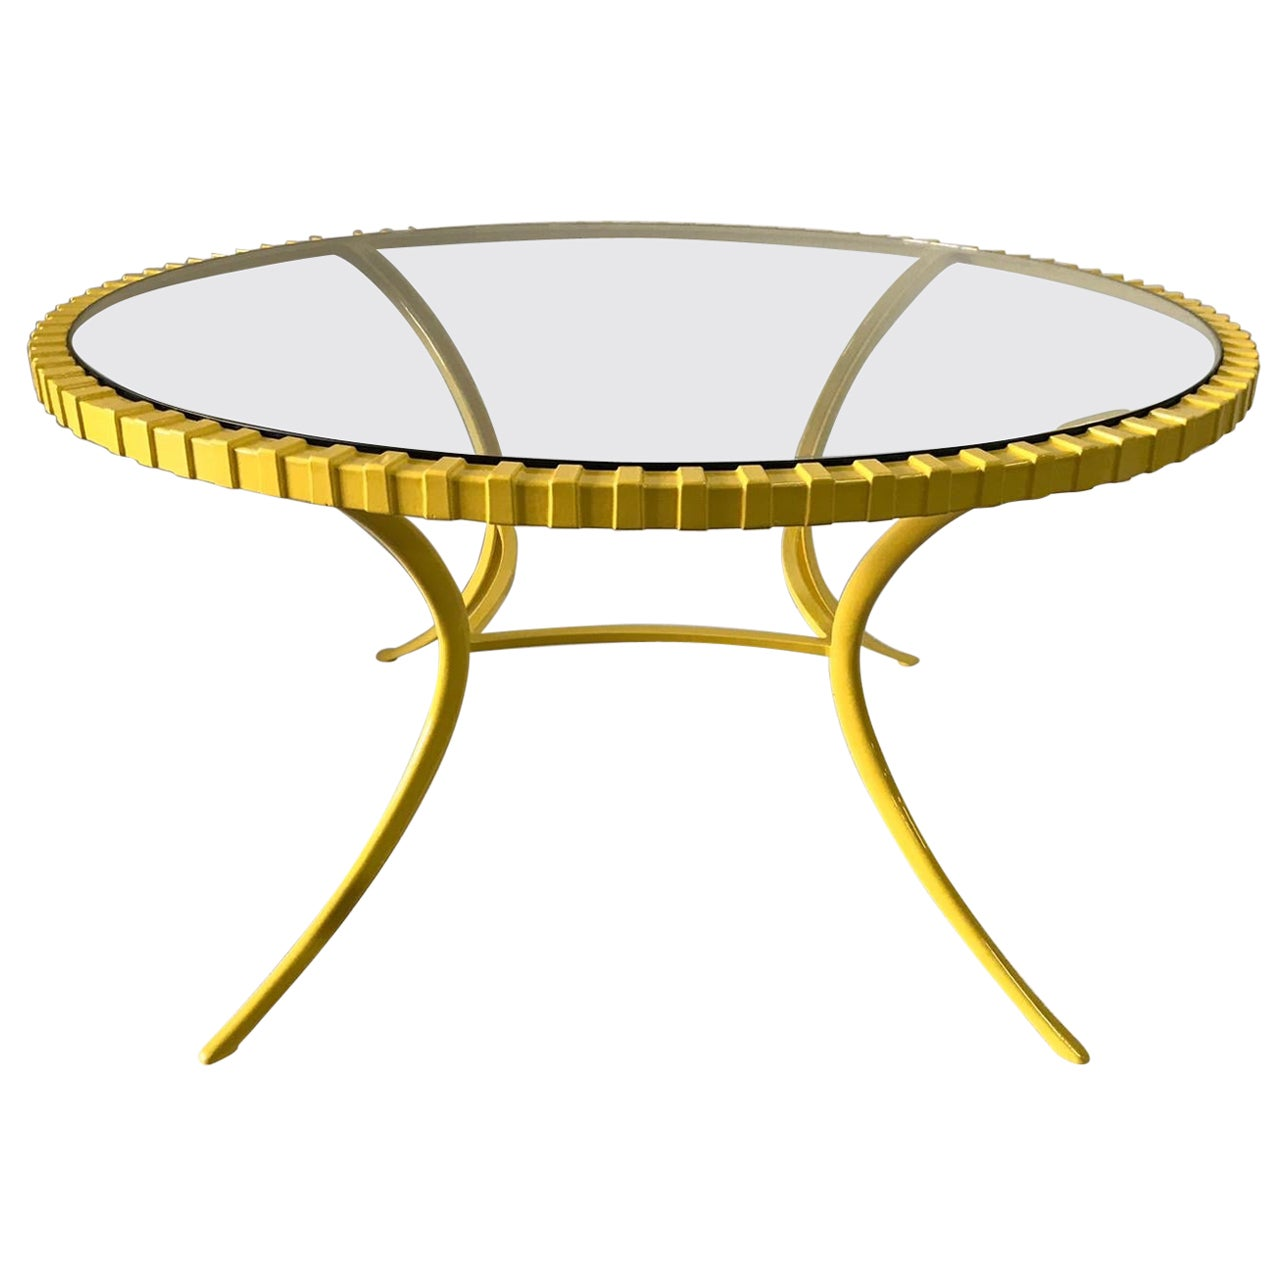 Large Round Canary Yellow Klismos Table by Thinline